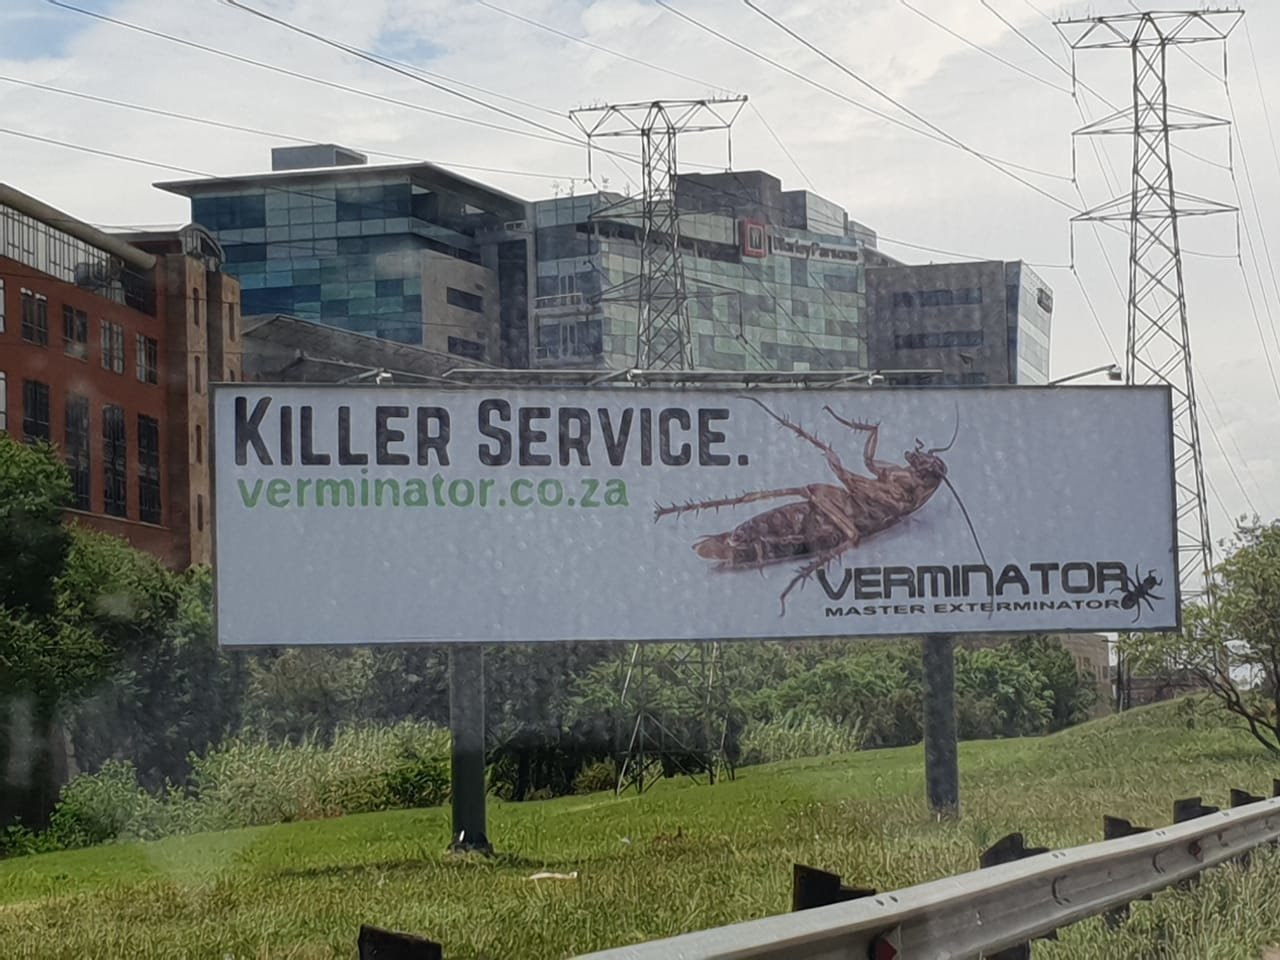 Most outdoor advertising sucks. This is how it should be done. Verminator!